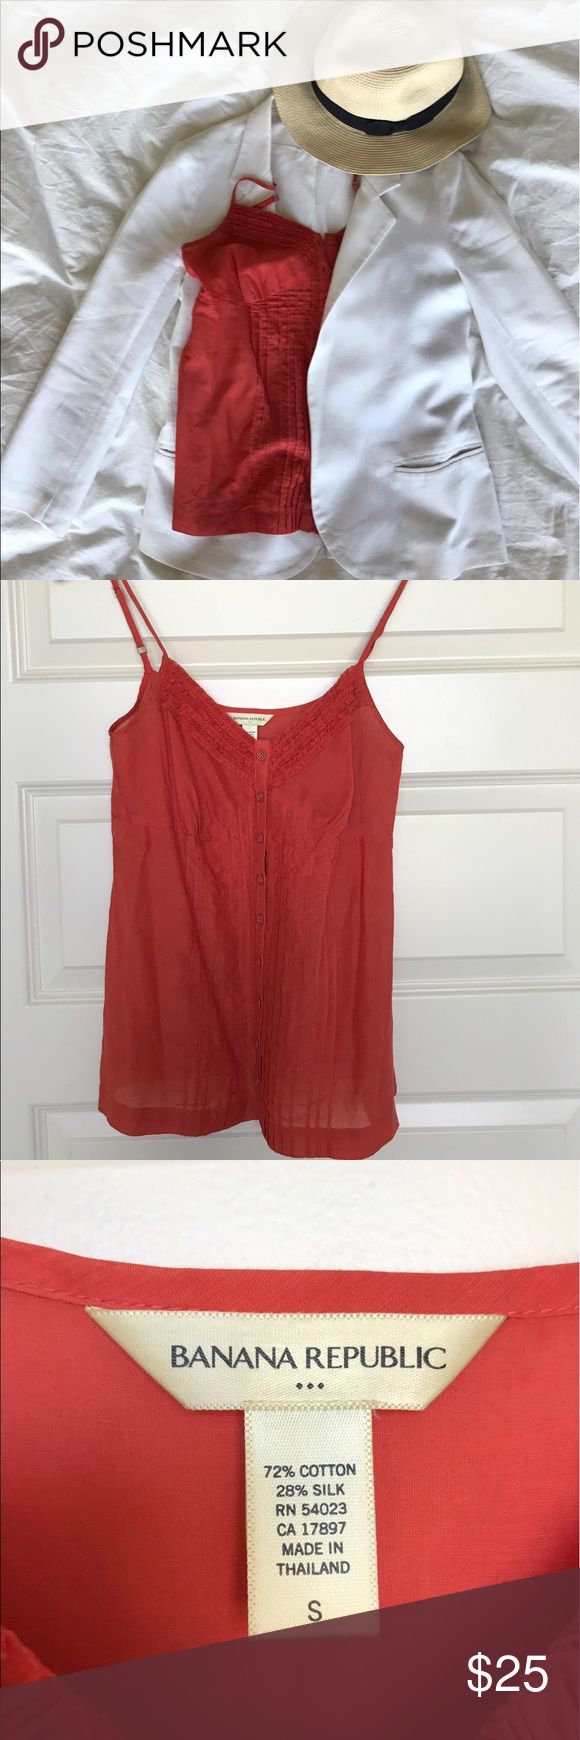 Banana Republic Sheer Blouse Orange Banana Republic button-up Sheer blouse with adjustable straps. In great condition with only very slight wear on the straps. Very versatile! Wear over a camisole with jeans and a white blazer with sun hat for the complete look. Bundle and get all pieces on my page for 10% off!!! Banana Republic Tops Blouses